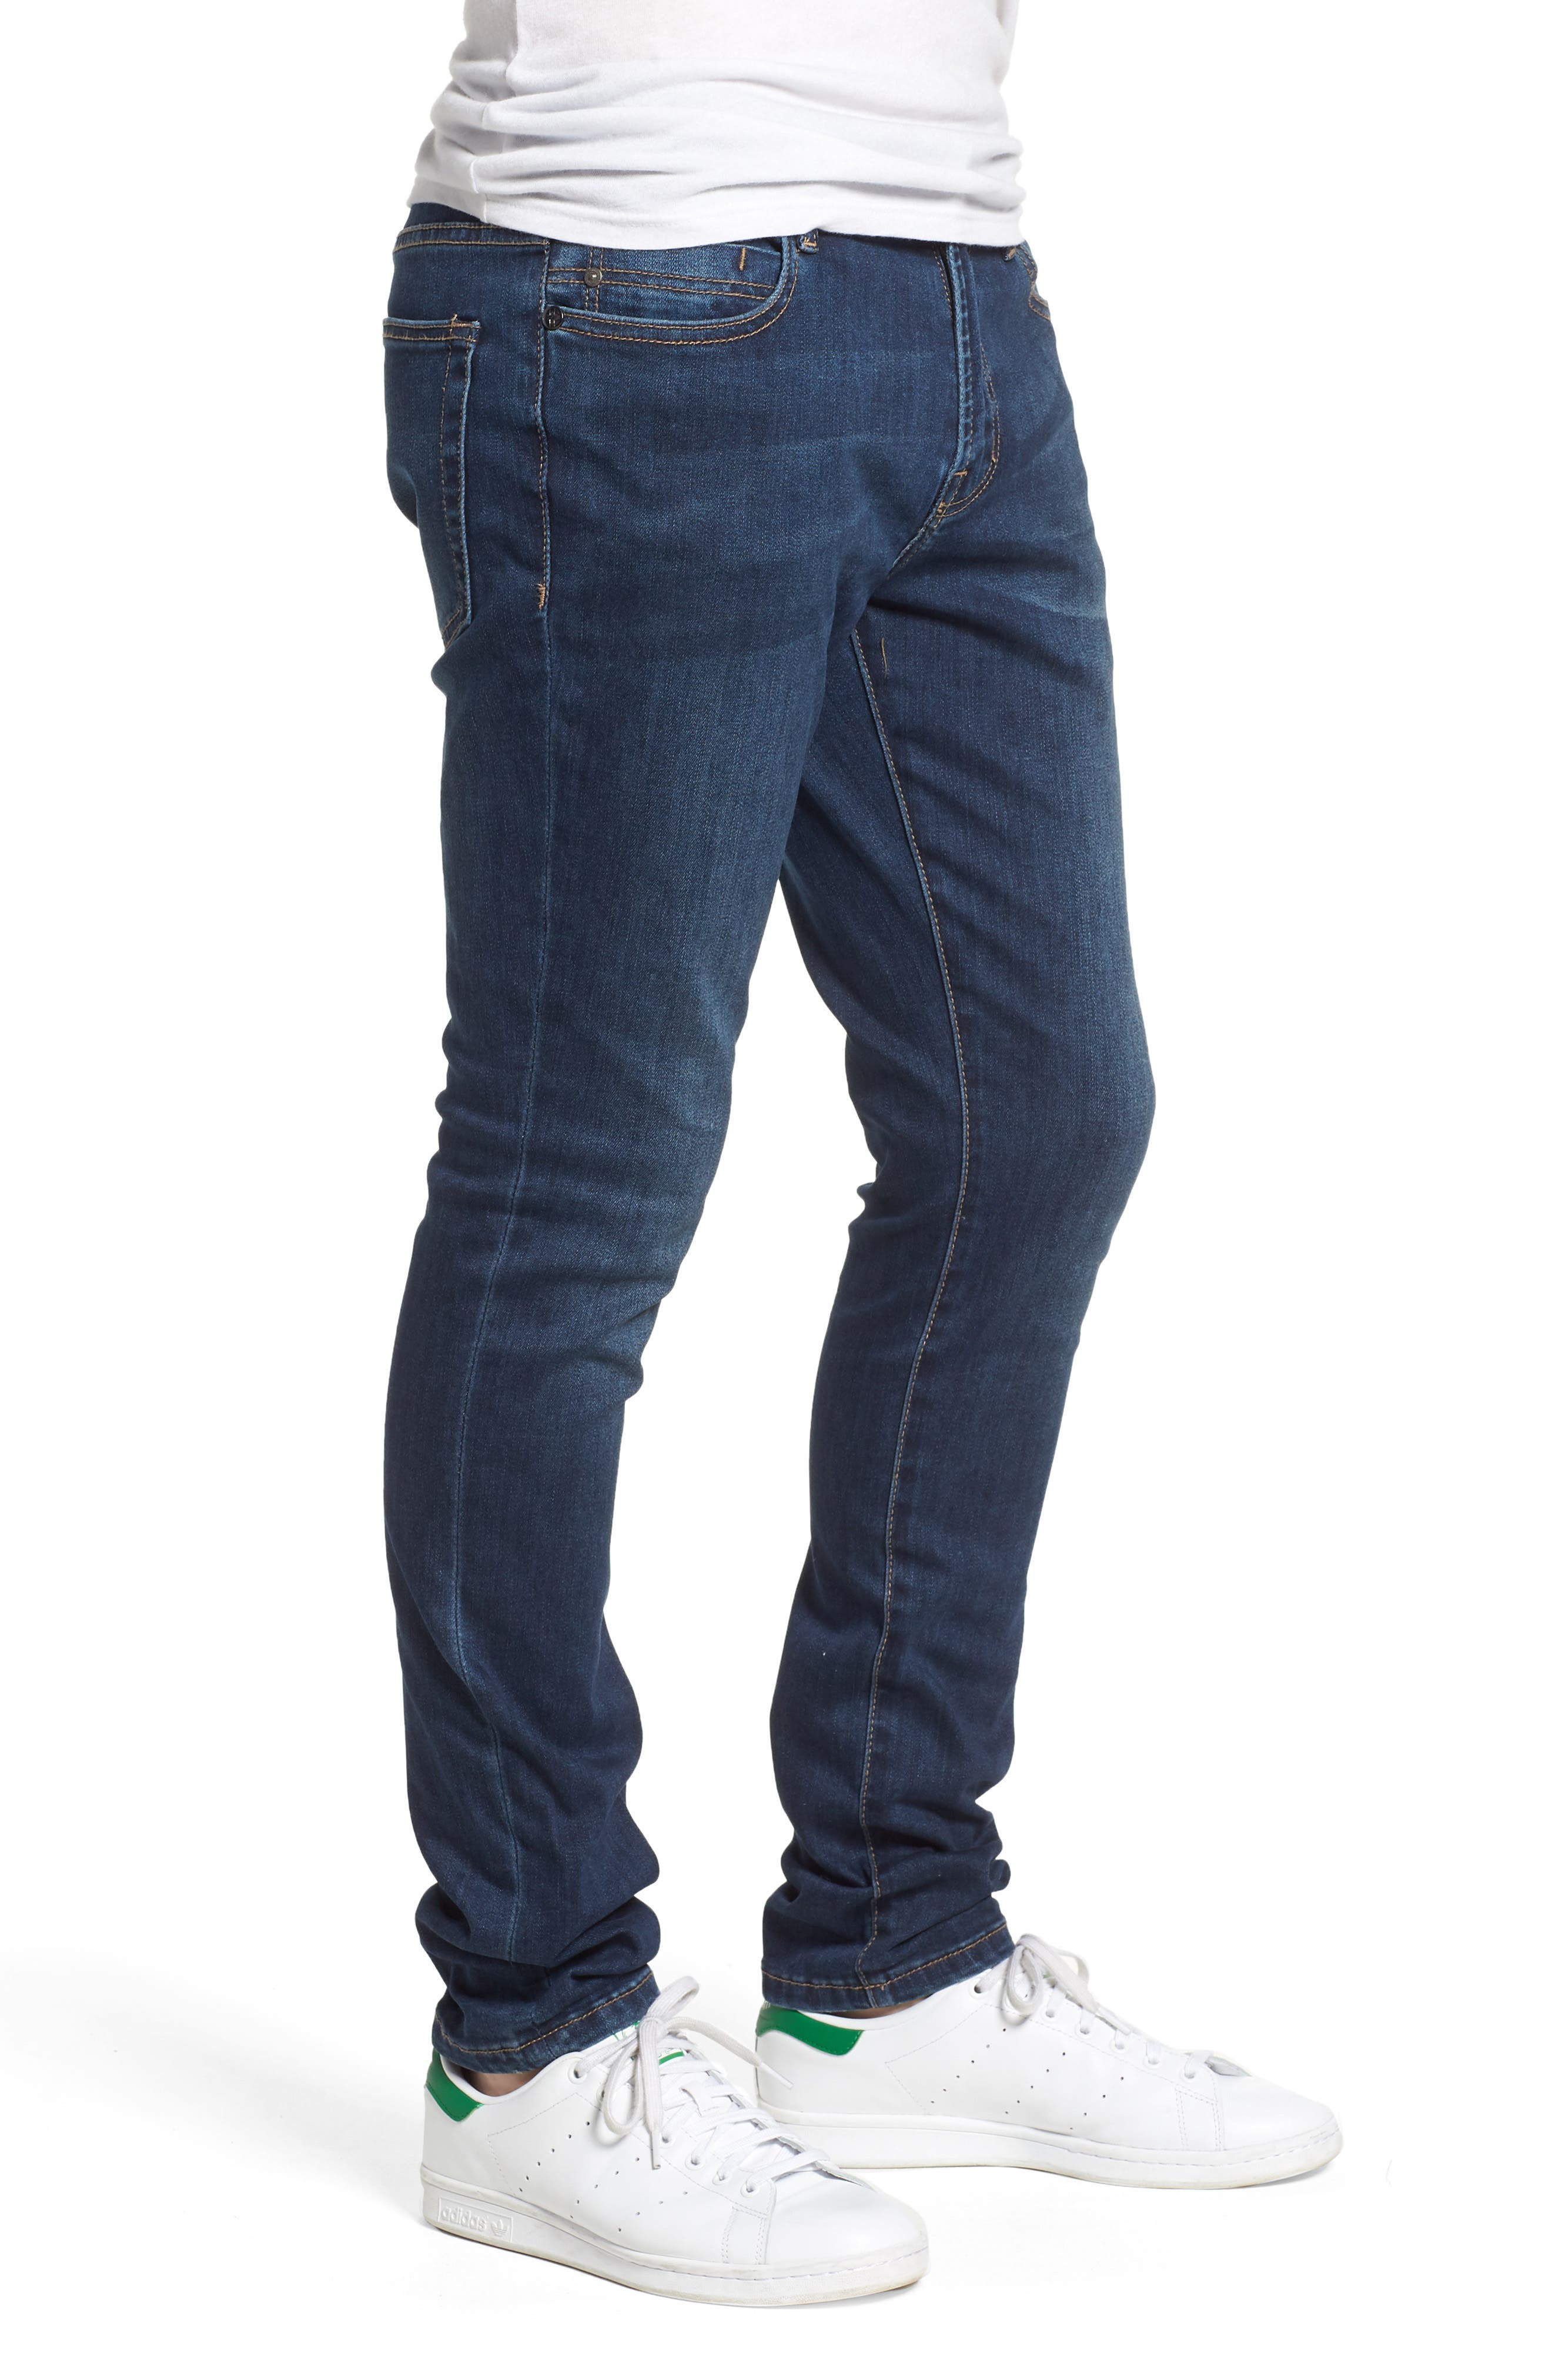 Jeans Co. Bond Skinny Fit Jeans,                             Alternate thumbnail 3, color,                             Cladwell Dark